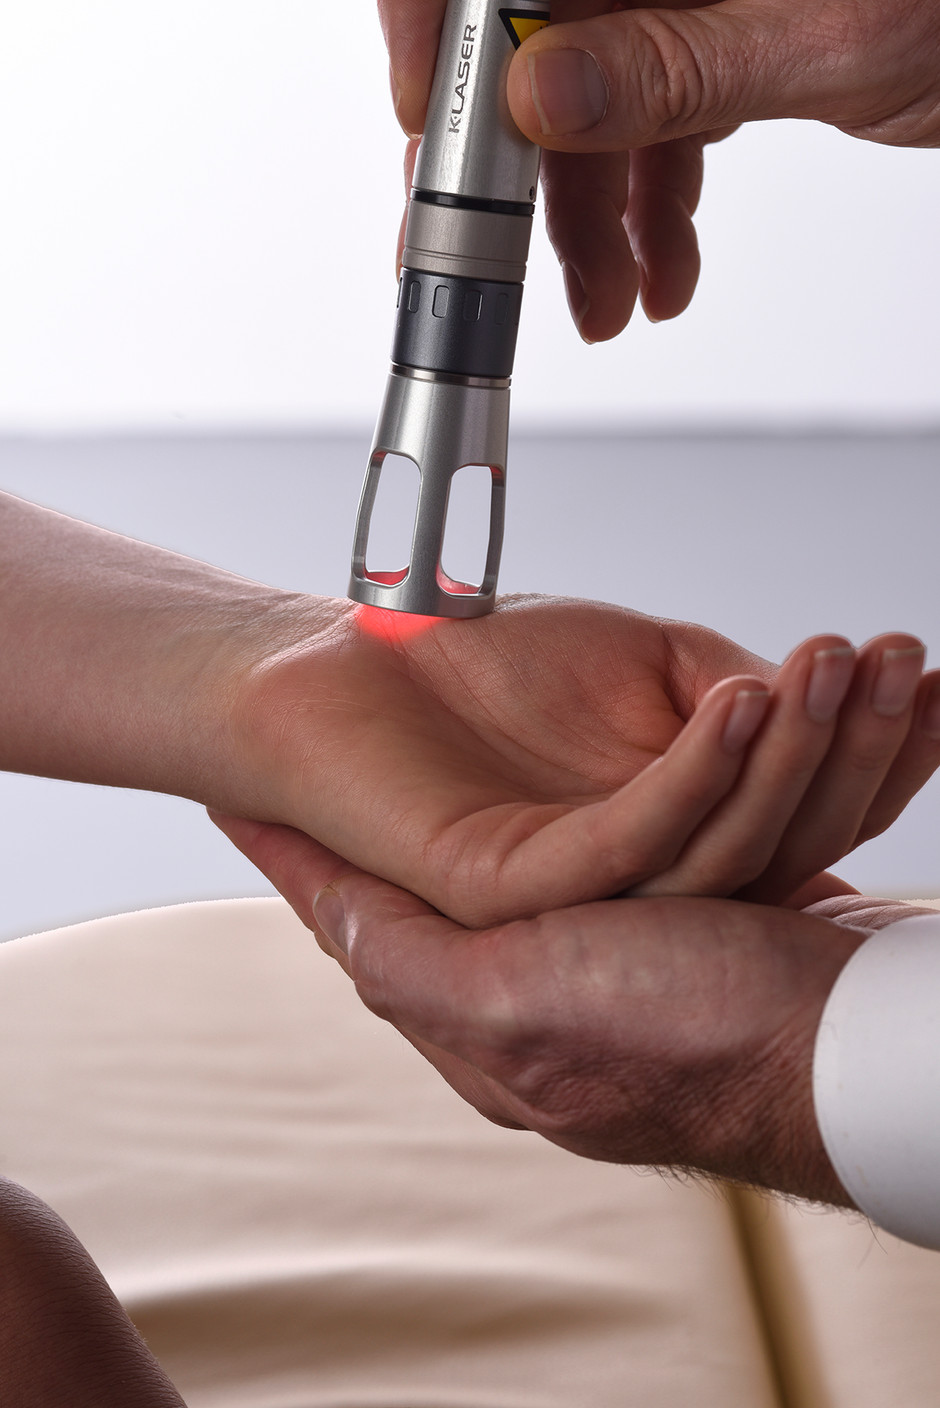 NEUROPATHY - WHAT YOU NEED TO KNOW